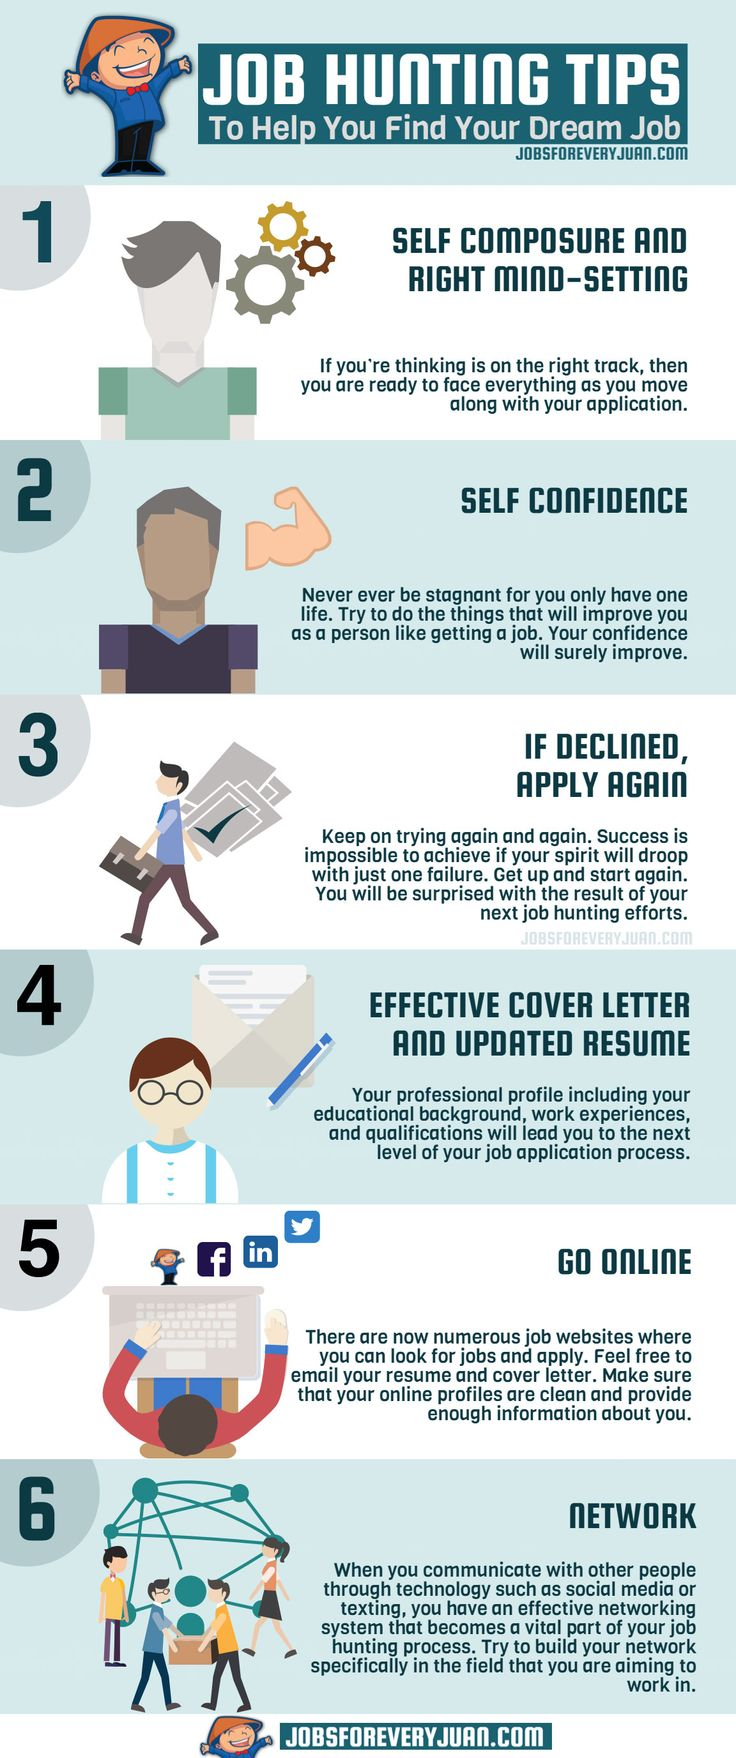 Job Hunting Tips To Help You Find Your Dream Job